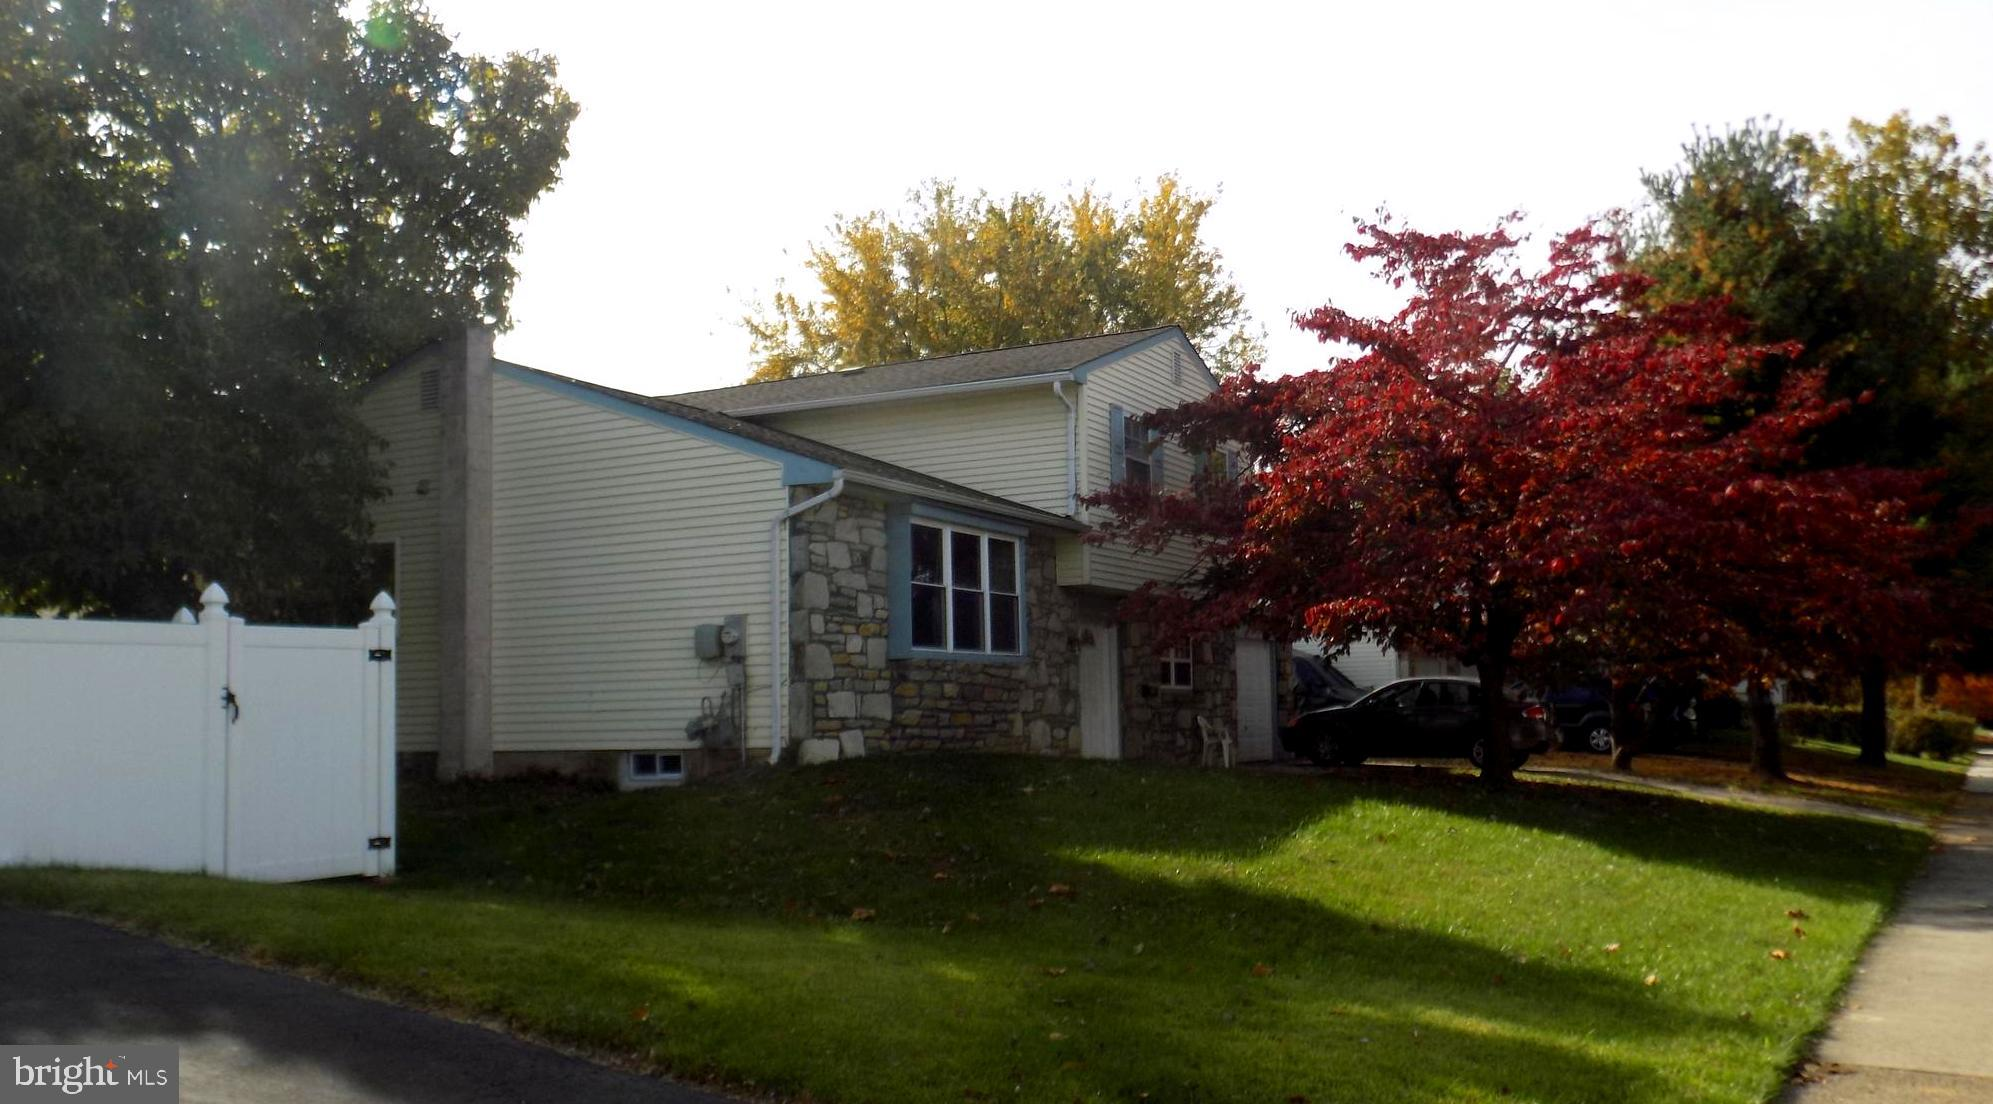 520 ELFORD ROAD, FAIRLESS HILLS, PA 19030